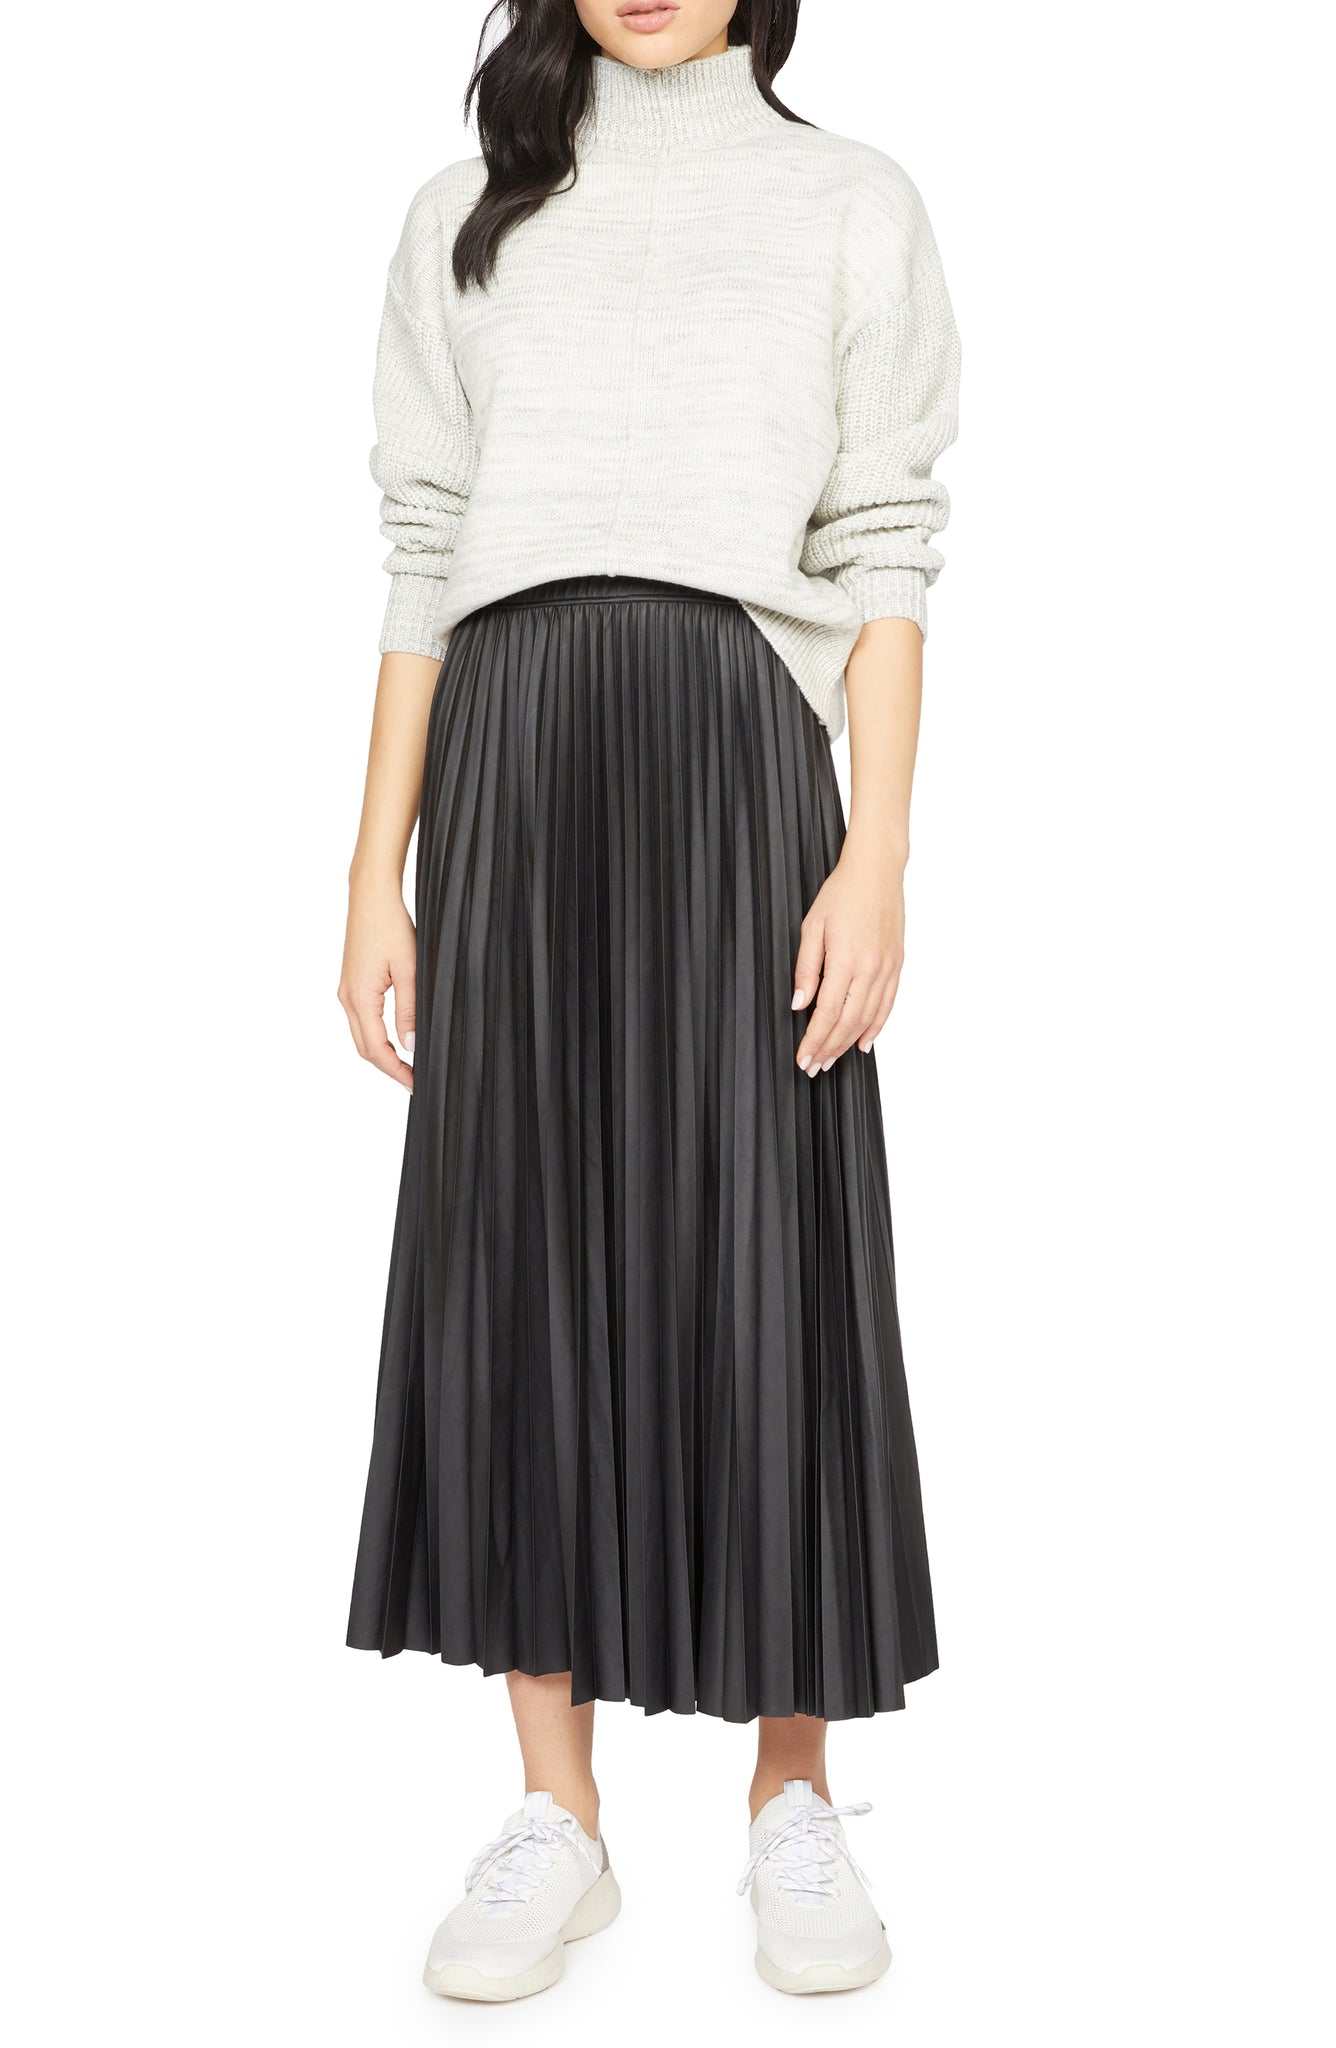 Top Secret Pleated Midi Skirt